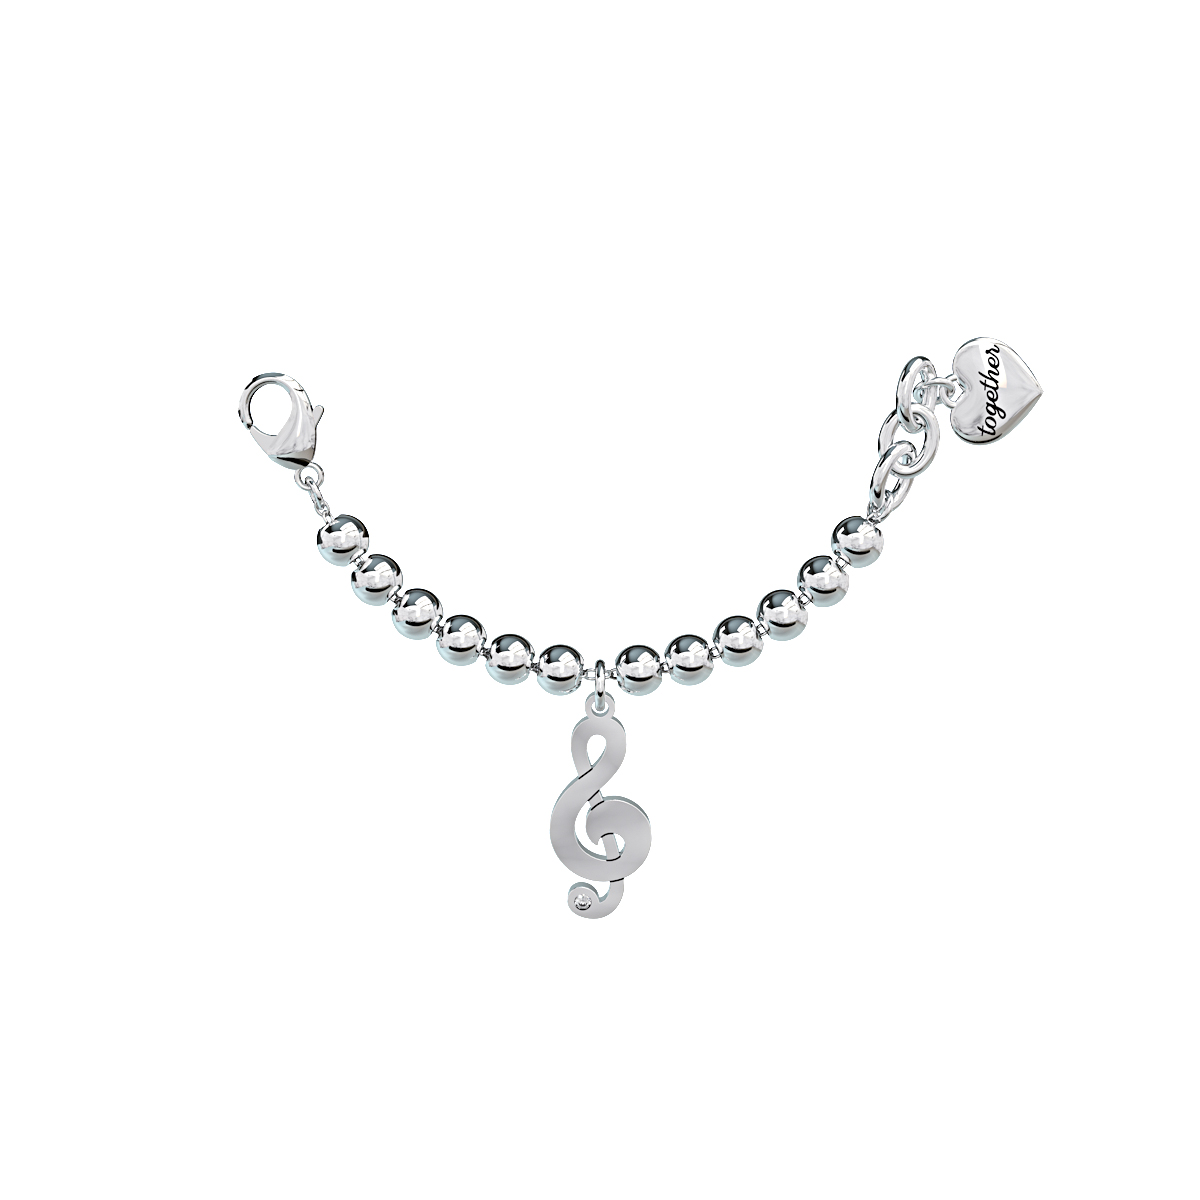 Elemento Single Bracciale 2jewels donna Together componibile Chiave di violino 131076